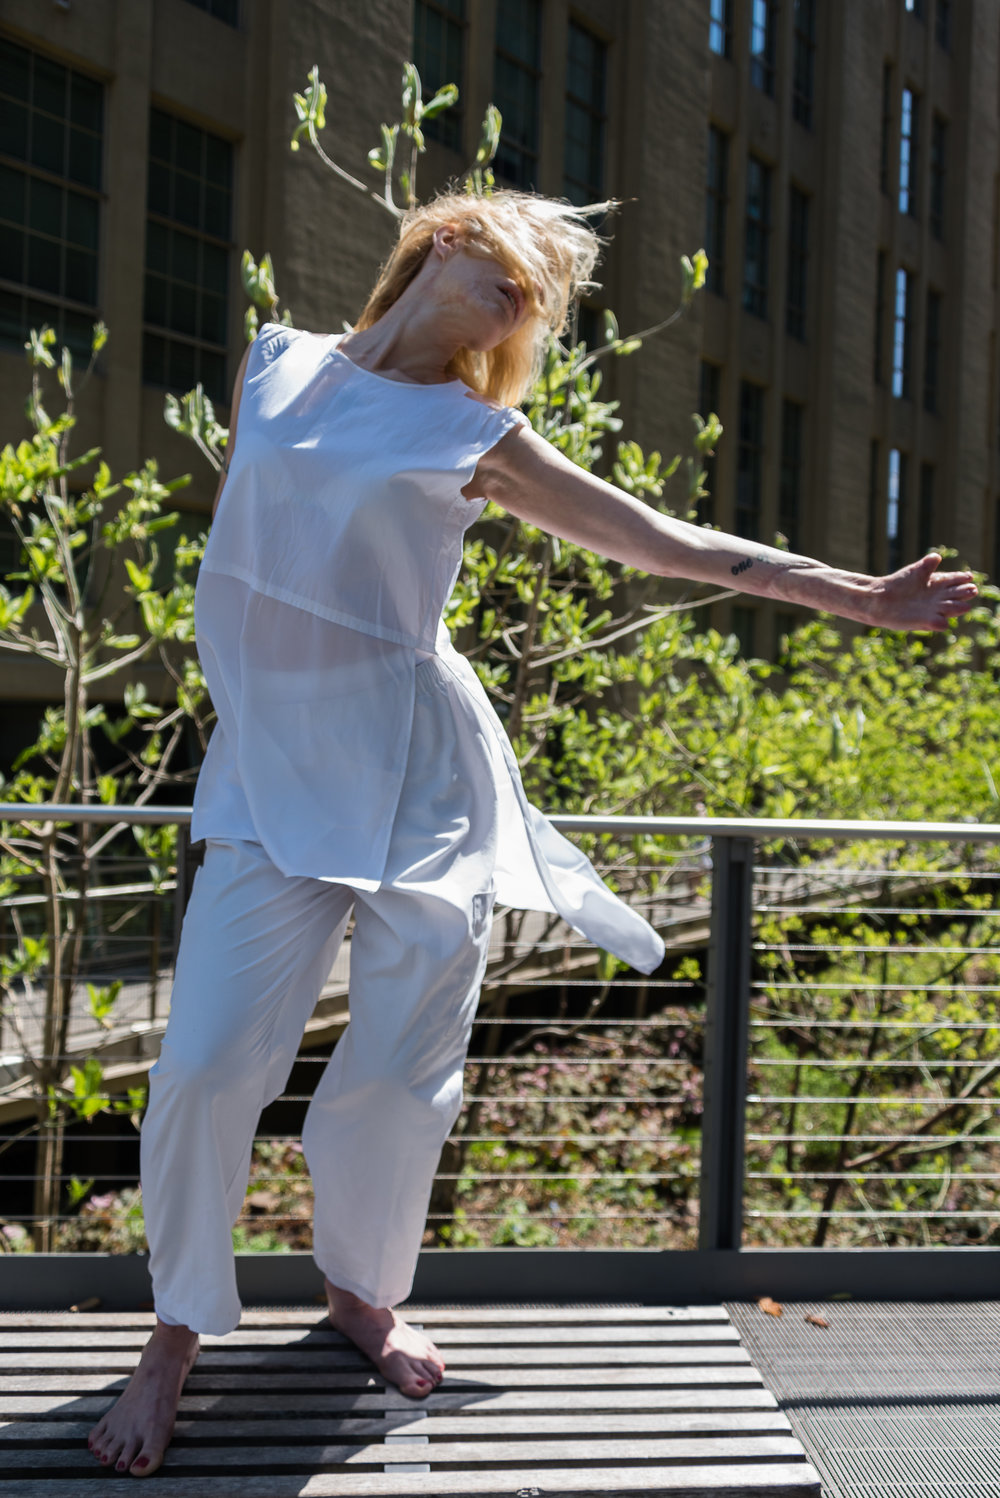 color photo: a woman in white standing on a bench in the wind, her arm outstretched